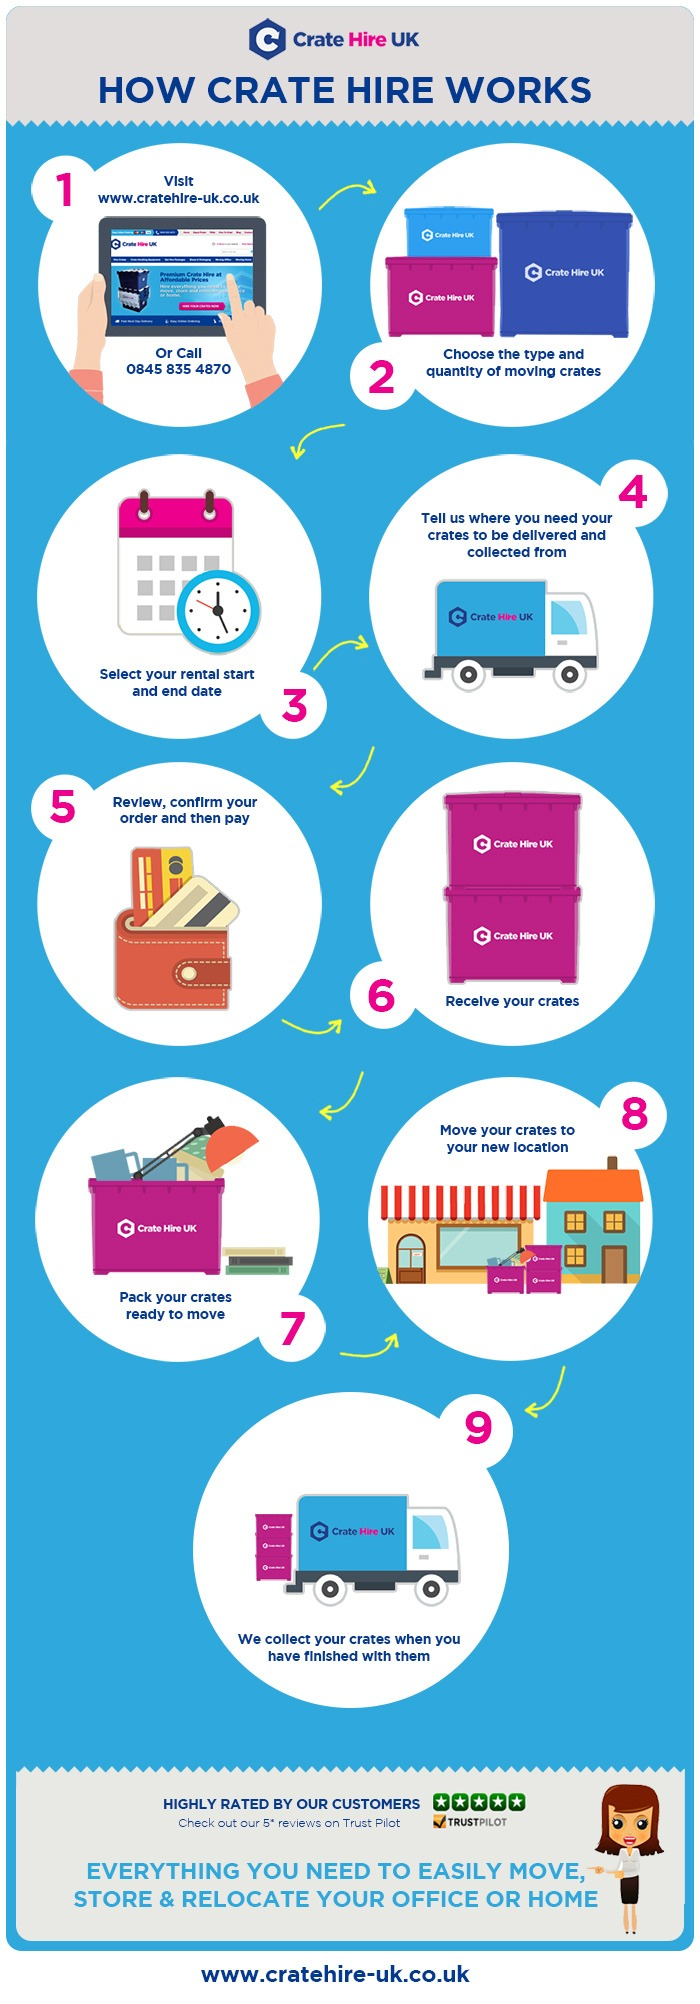 Crate Hire UK Rental Hire Process Infographic